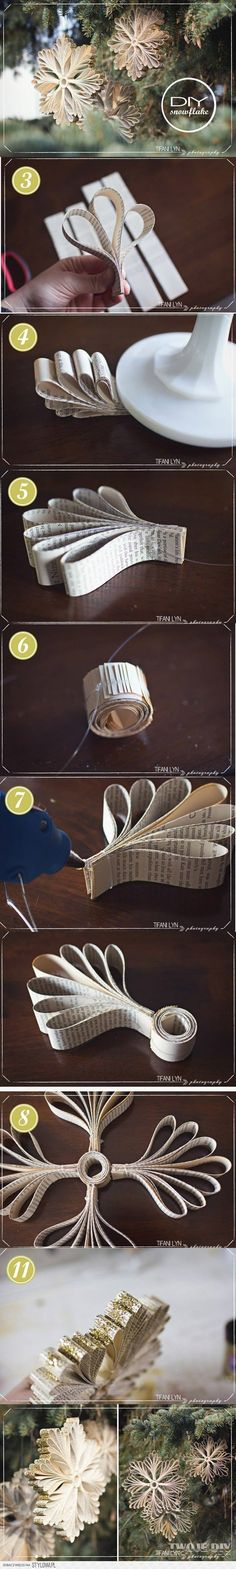 photo tutorial for recycled paper ornaments ... luv them!